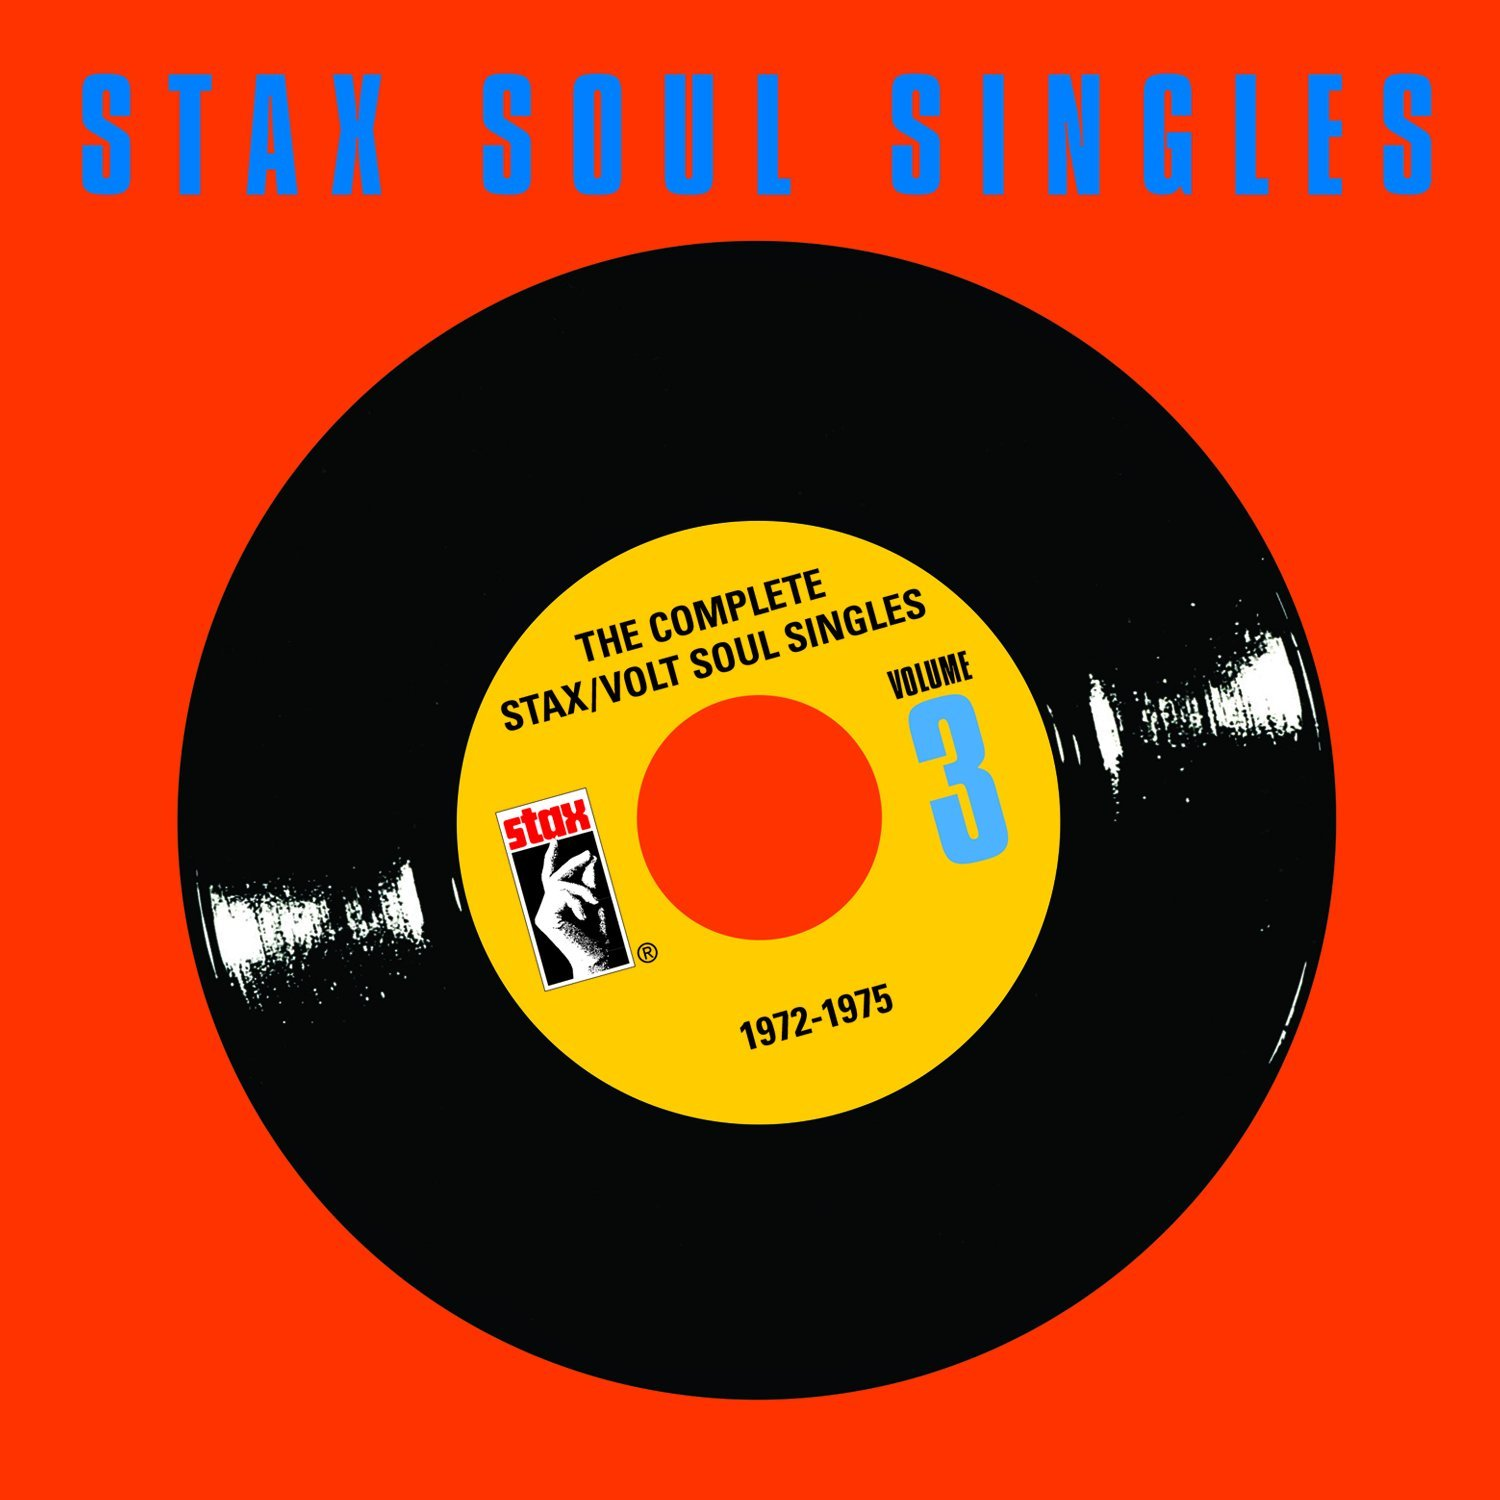 The Complete Stax/Volt Soul Singles: 1972-1975 by Stax